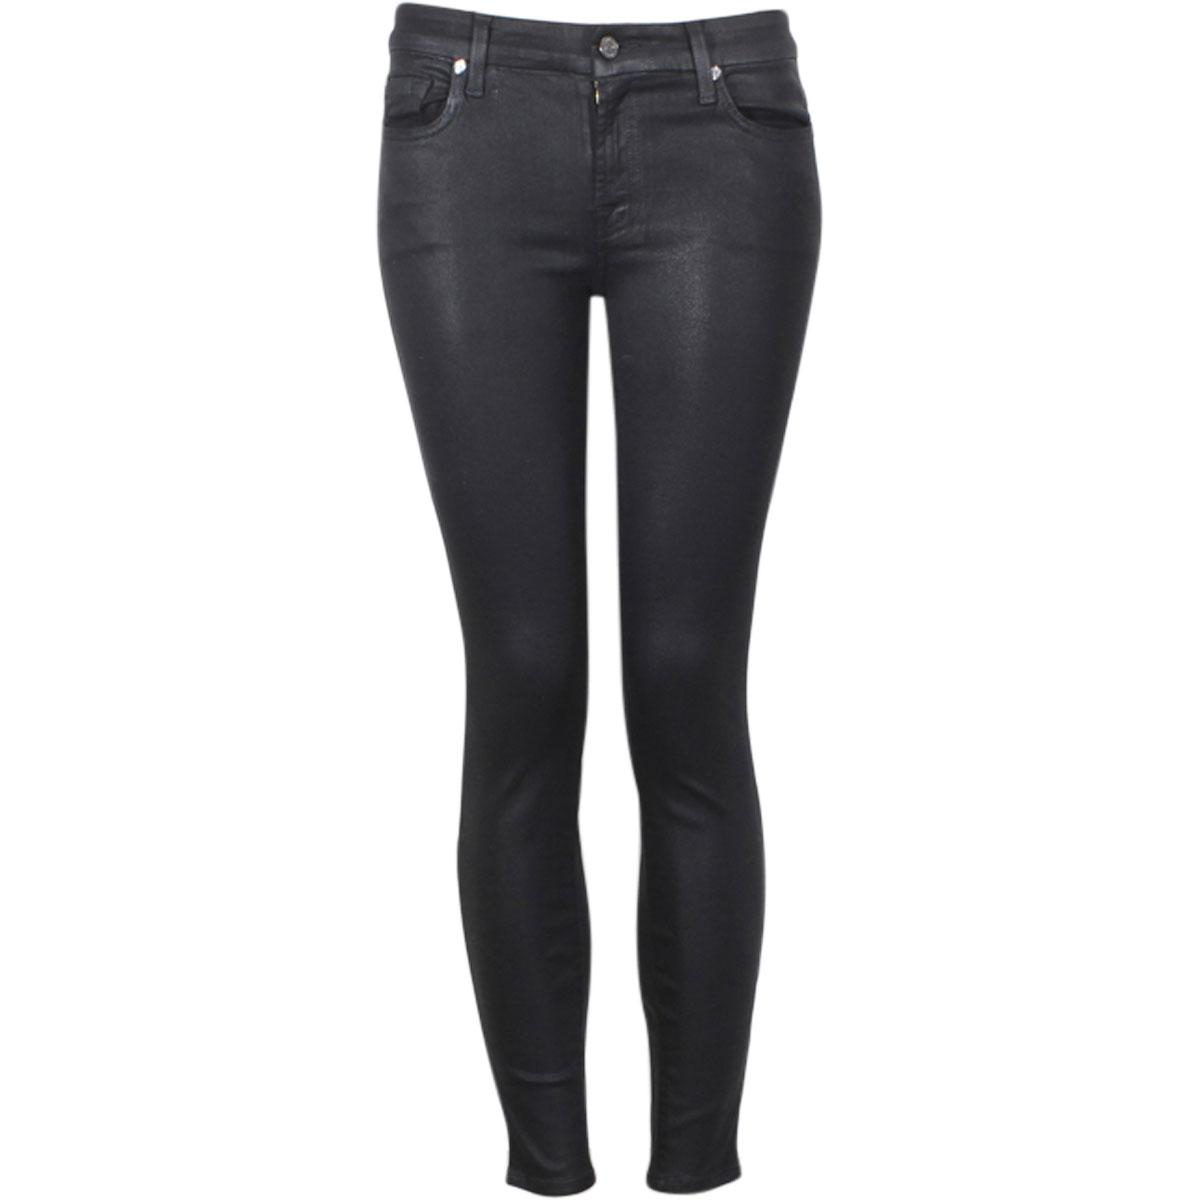 558af3f716 7 For All Mankind Women's The Ankle Short Inseam Skinny Jeans